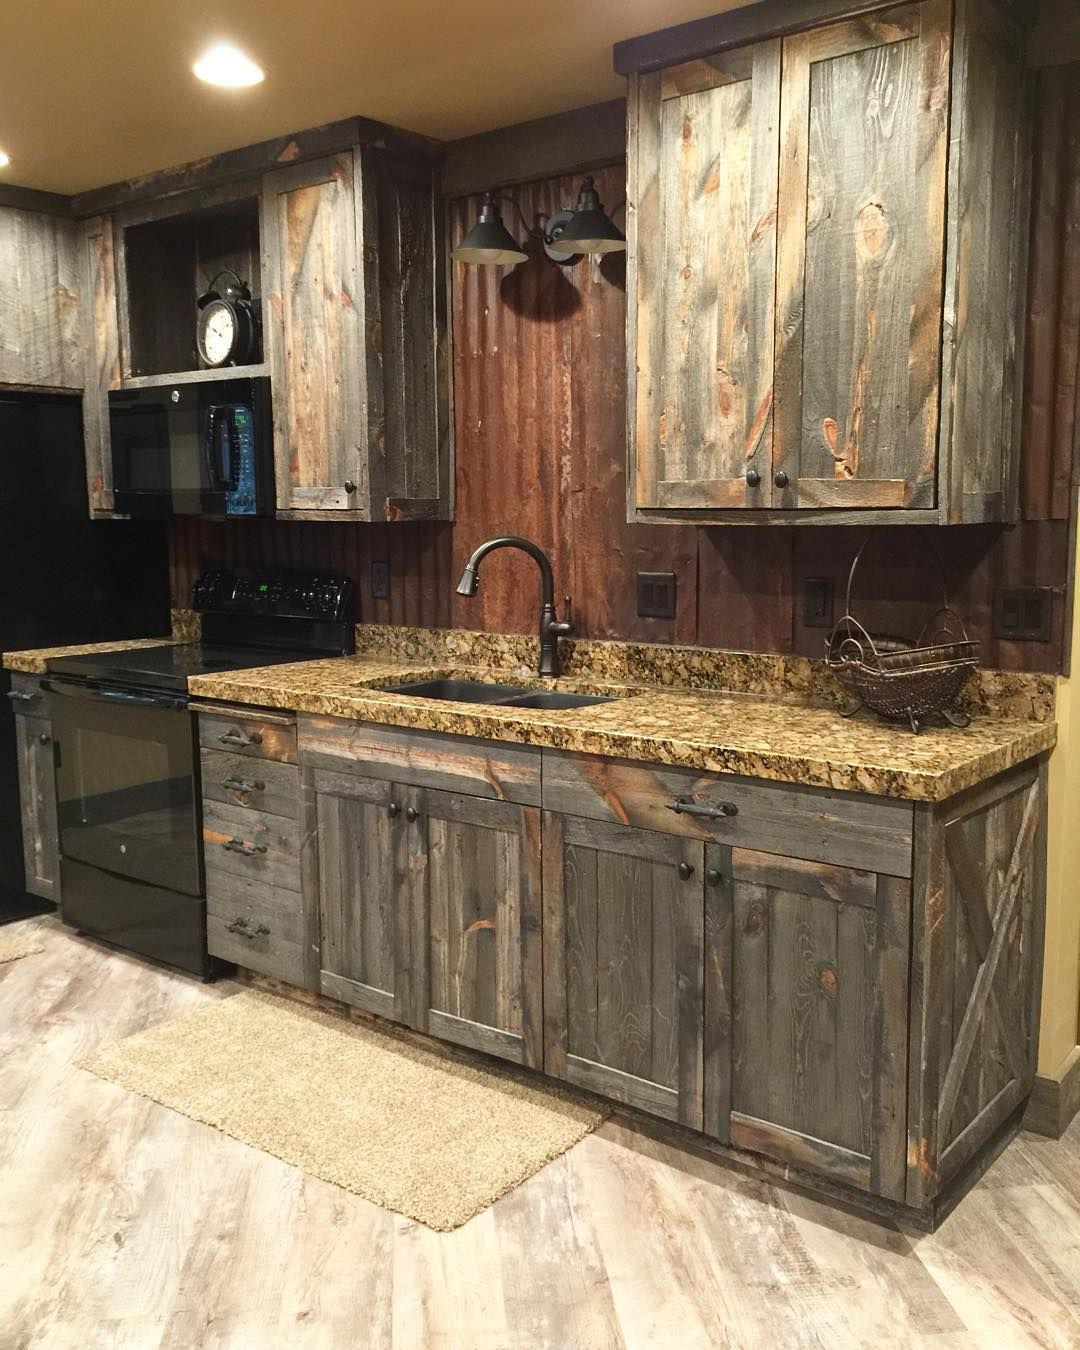 12 Genius Initiatives Of How To Improve How To Make Rustic Cabinet Doors In 2020 Rustic Kitchen Rustic Kitchen Cabinets Pallet Kitchen